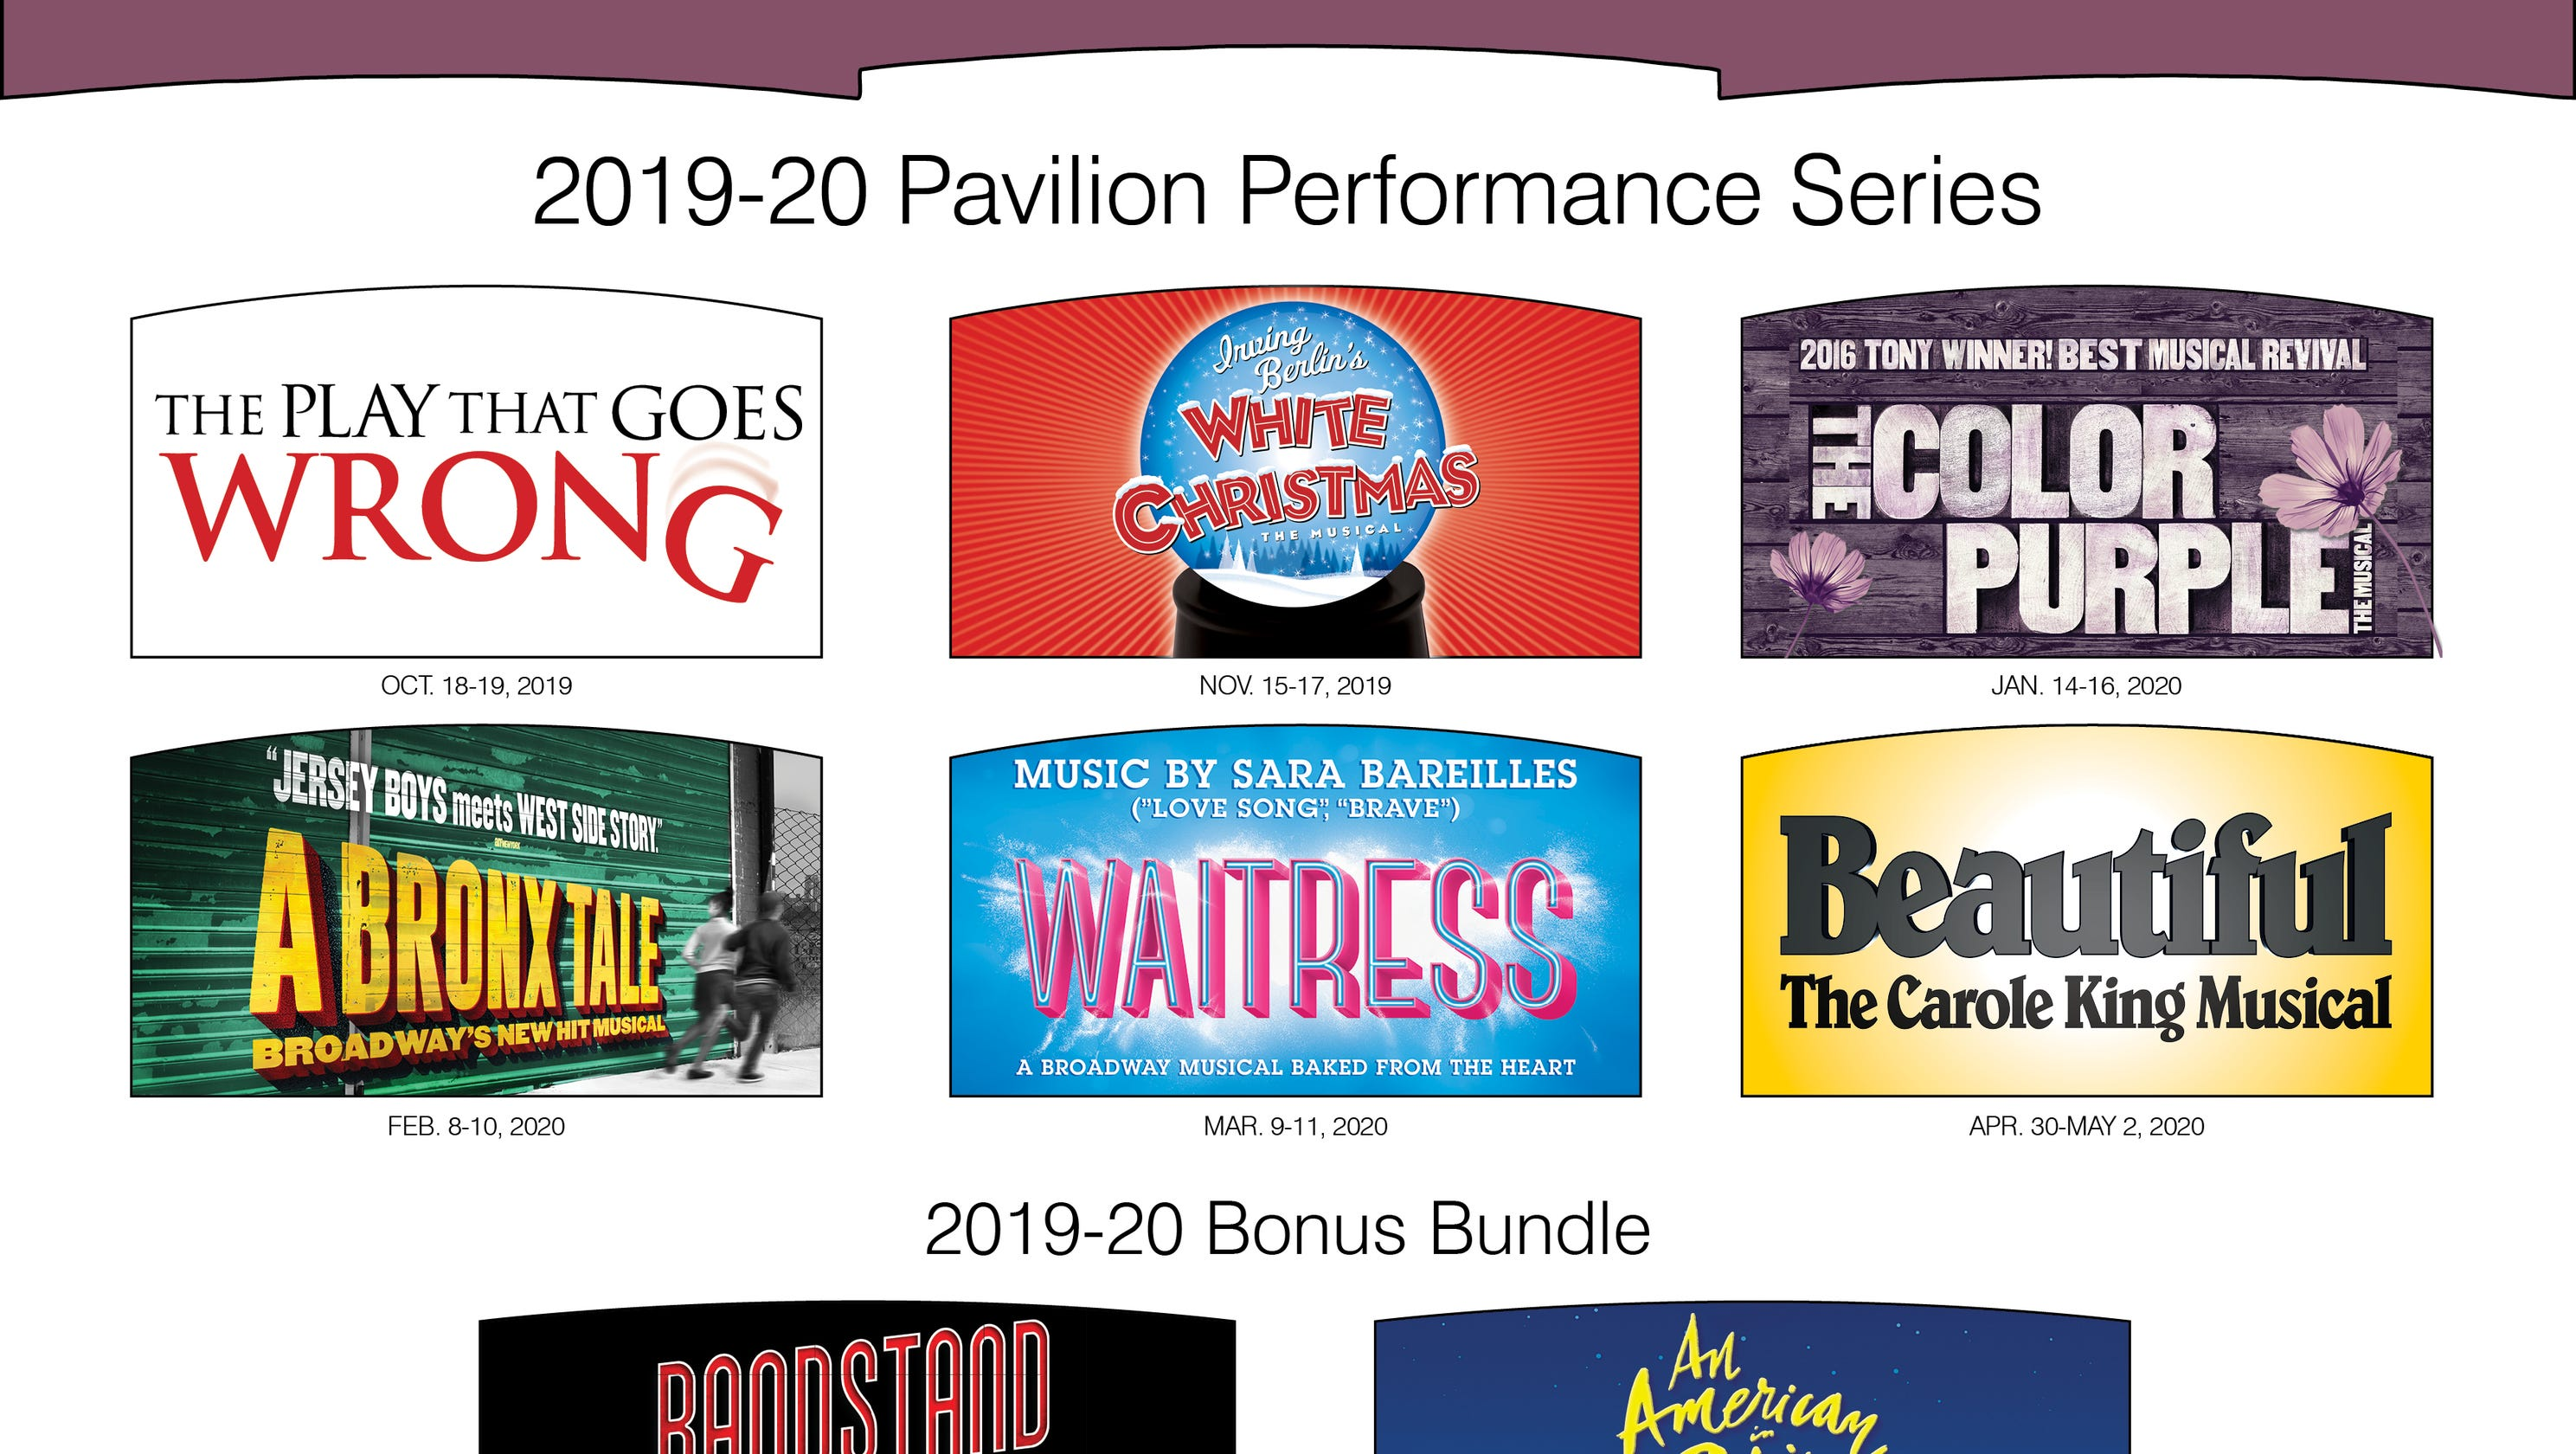 Best Comedy Shows 2020 Washington Pavilion bringing musicals, comedy to 2019 20 lineup of